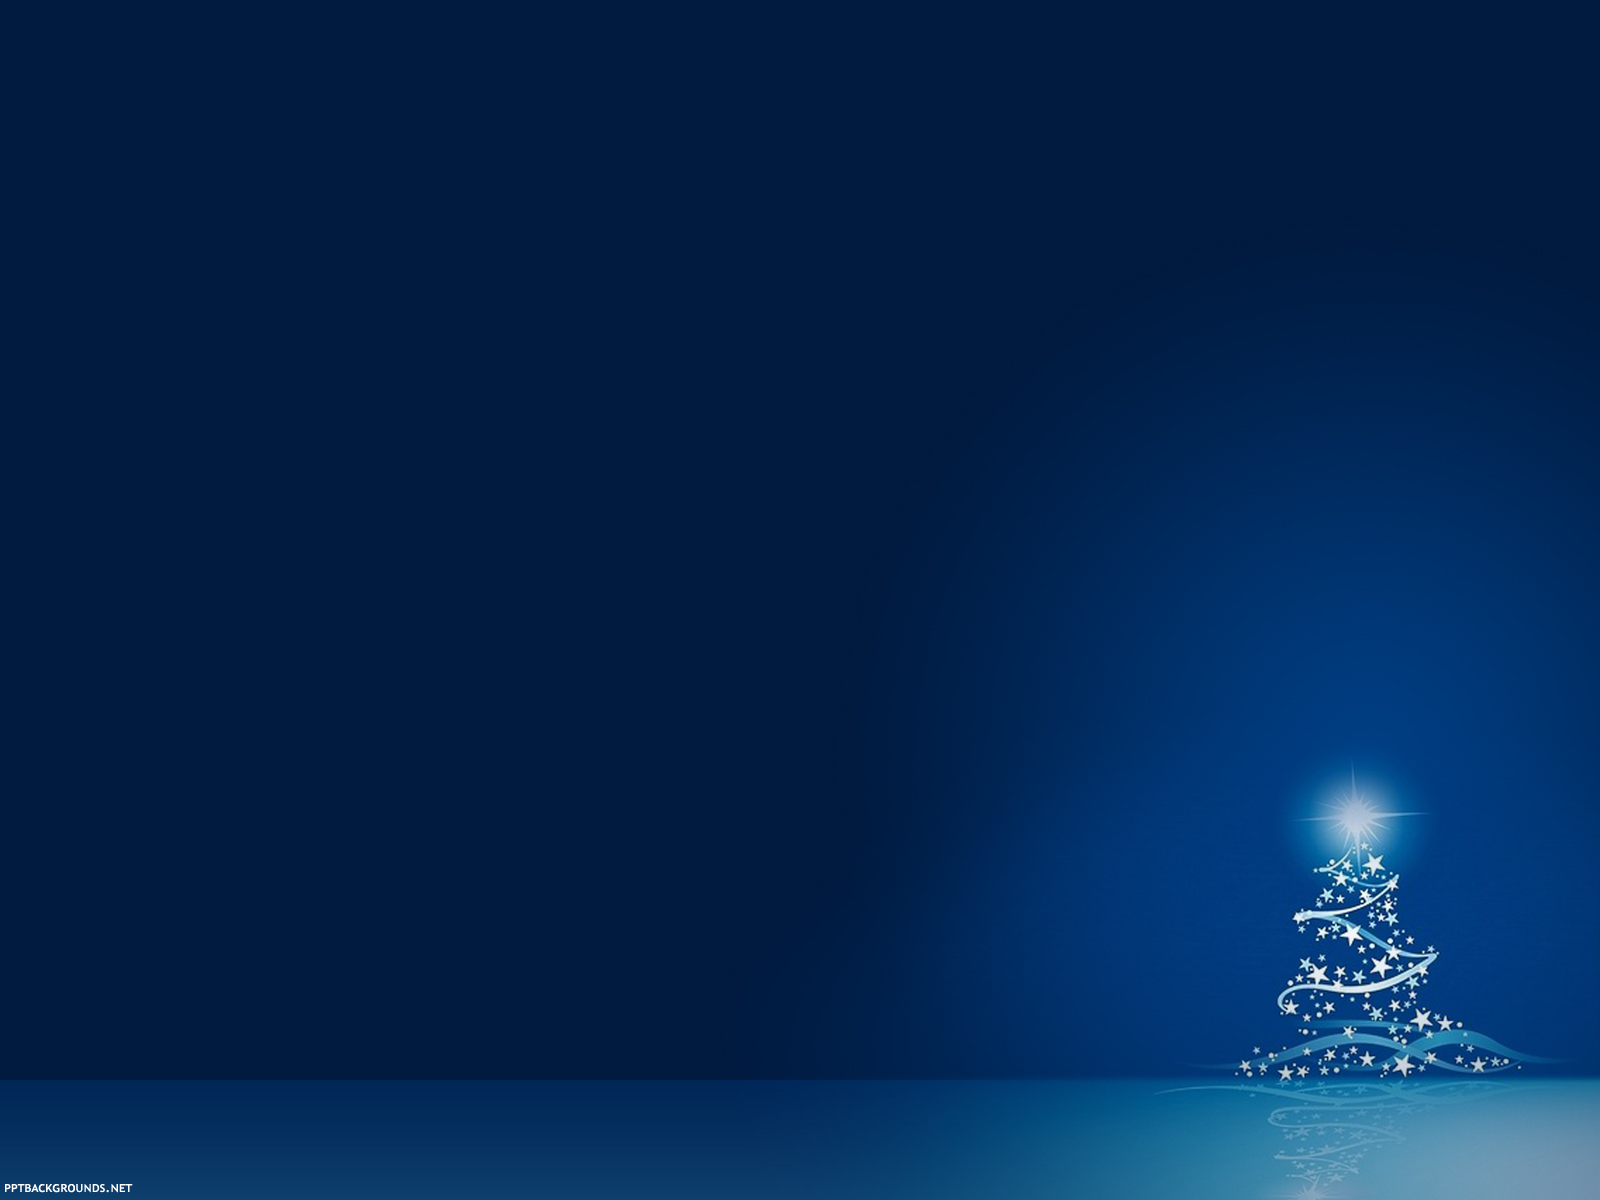 Free download christmas powerpoint presentation templates mandegar free download christmas powerpoint presentation templates toneelgroepblik Image collections